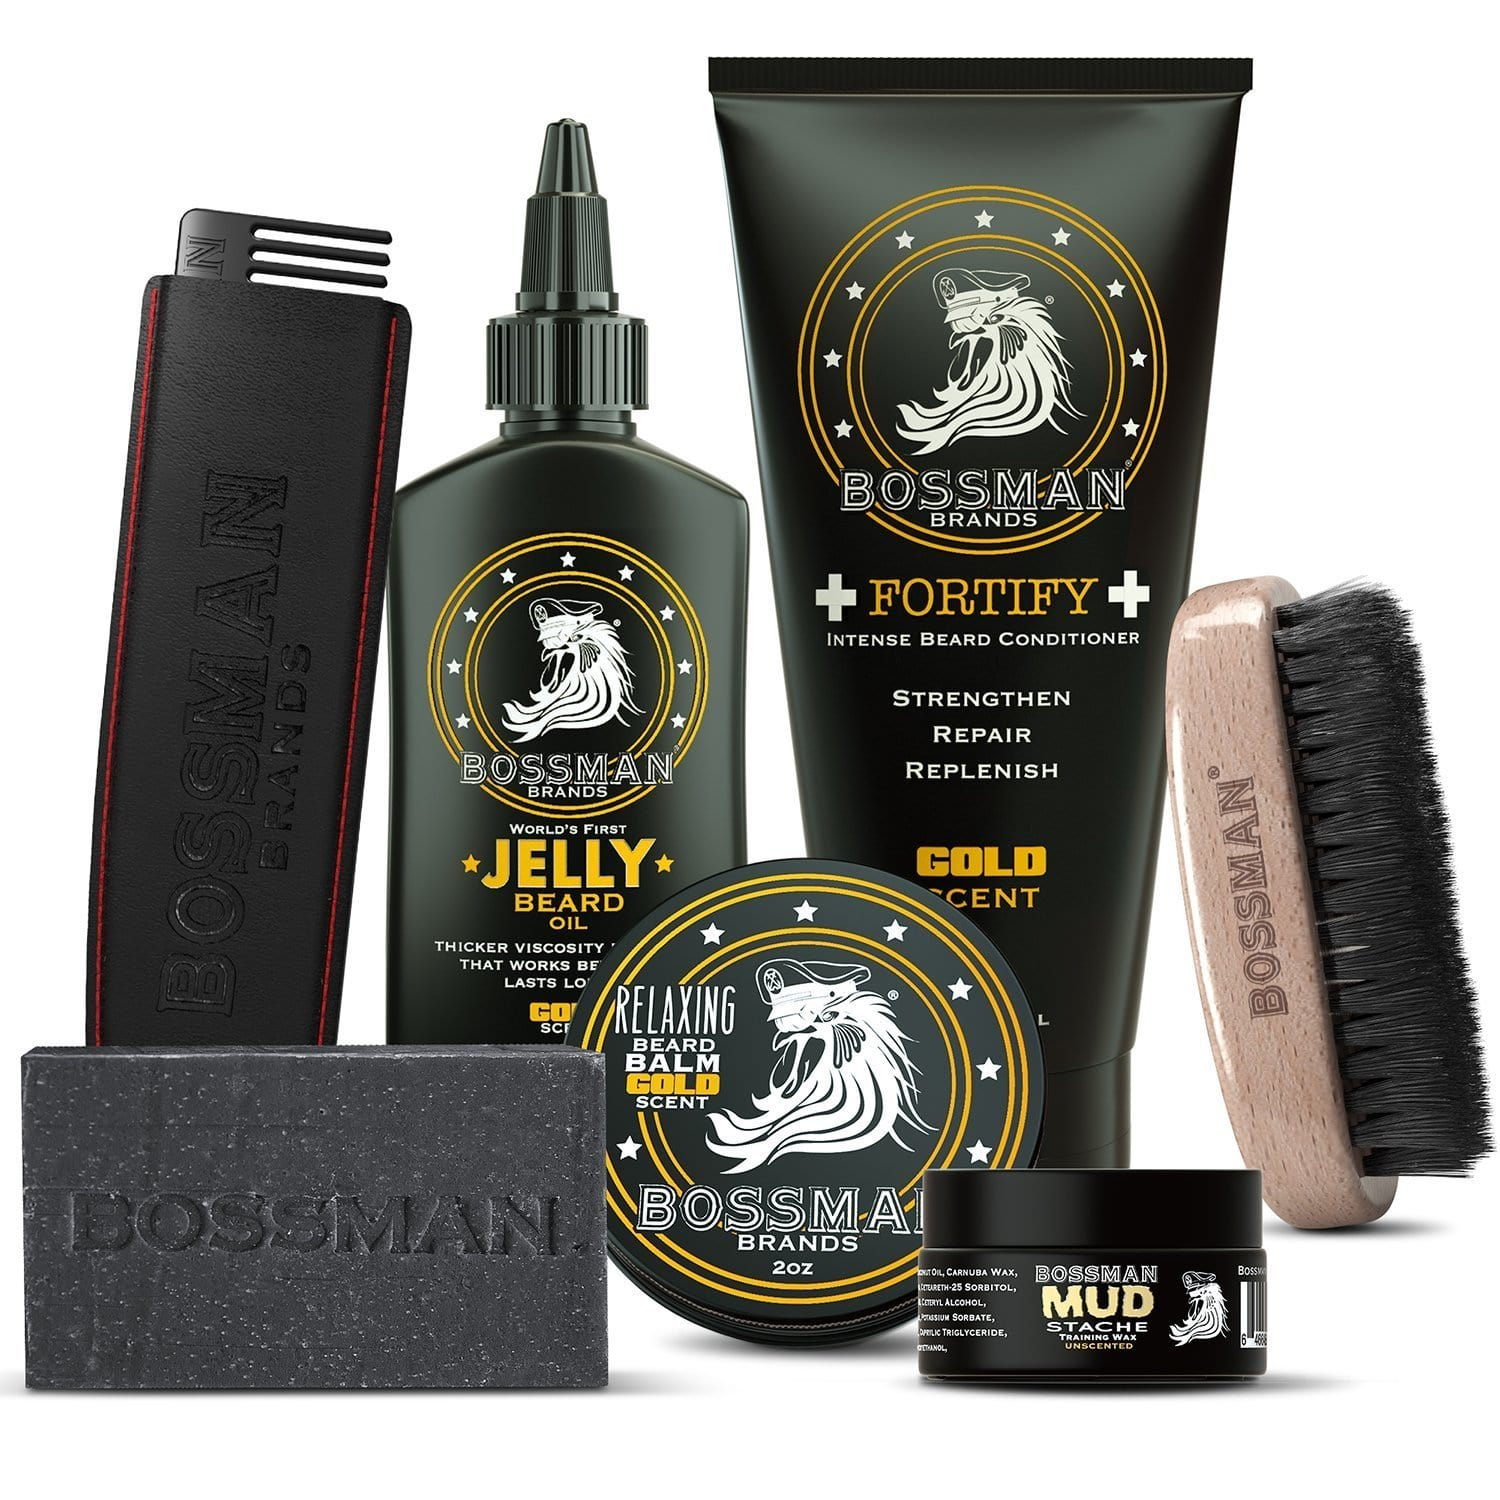 Bossman Big Boss Beard Care Kit - Gold Scent